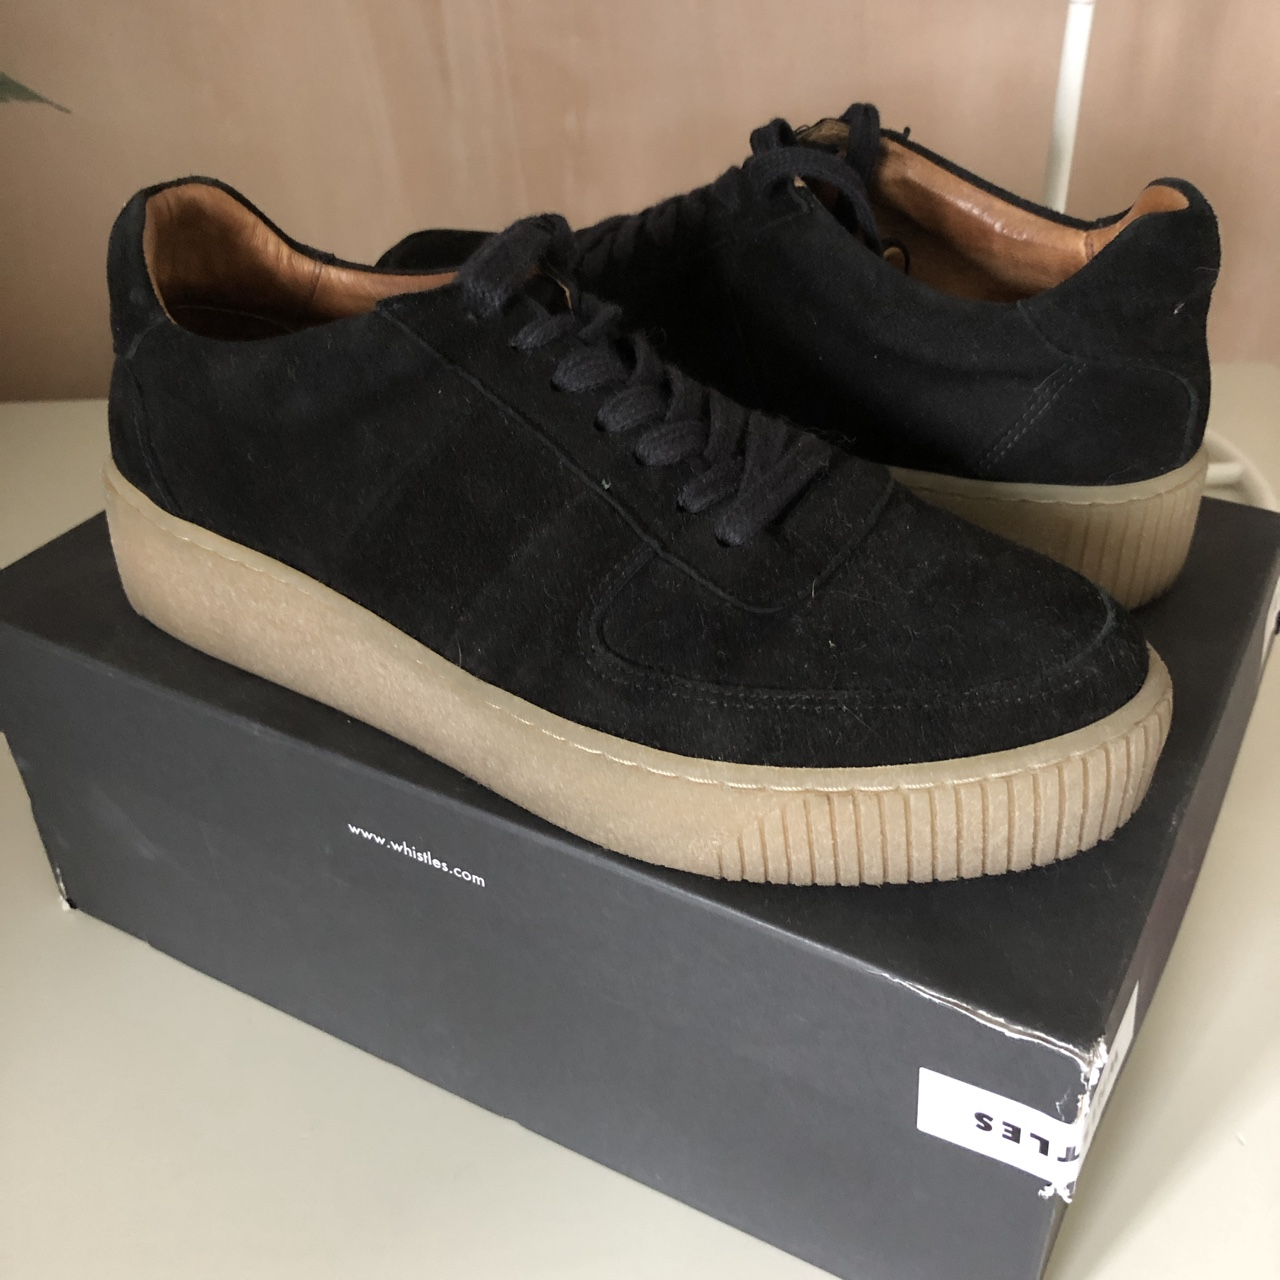 whistles black trainers